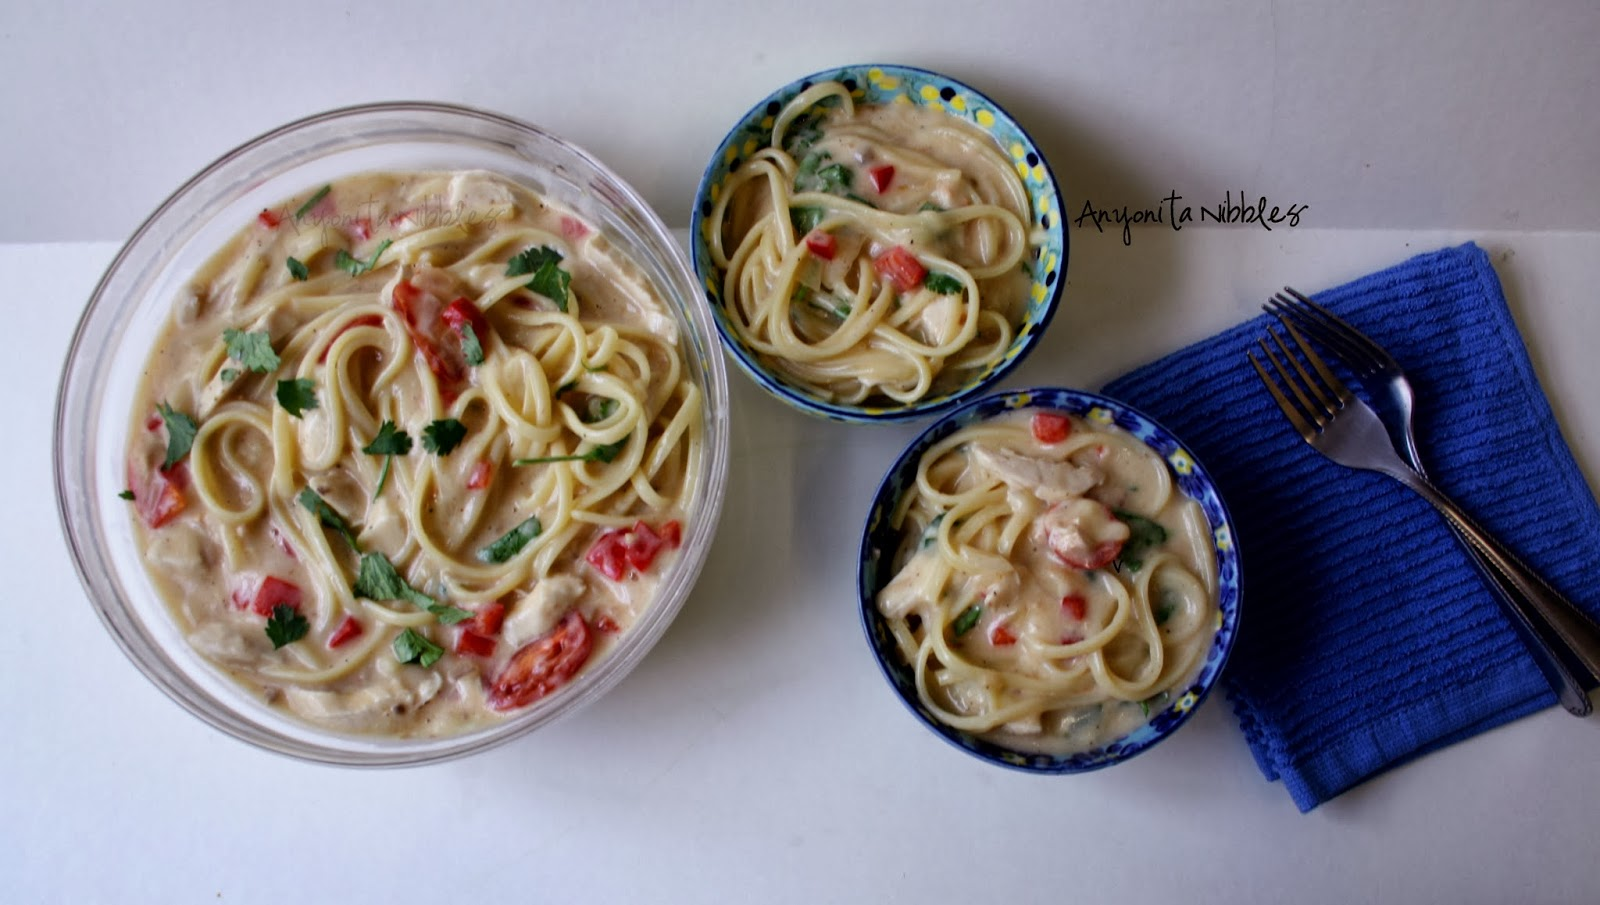 An intriguing comination of flavors in an easy tocook spaghetti dish!